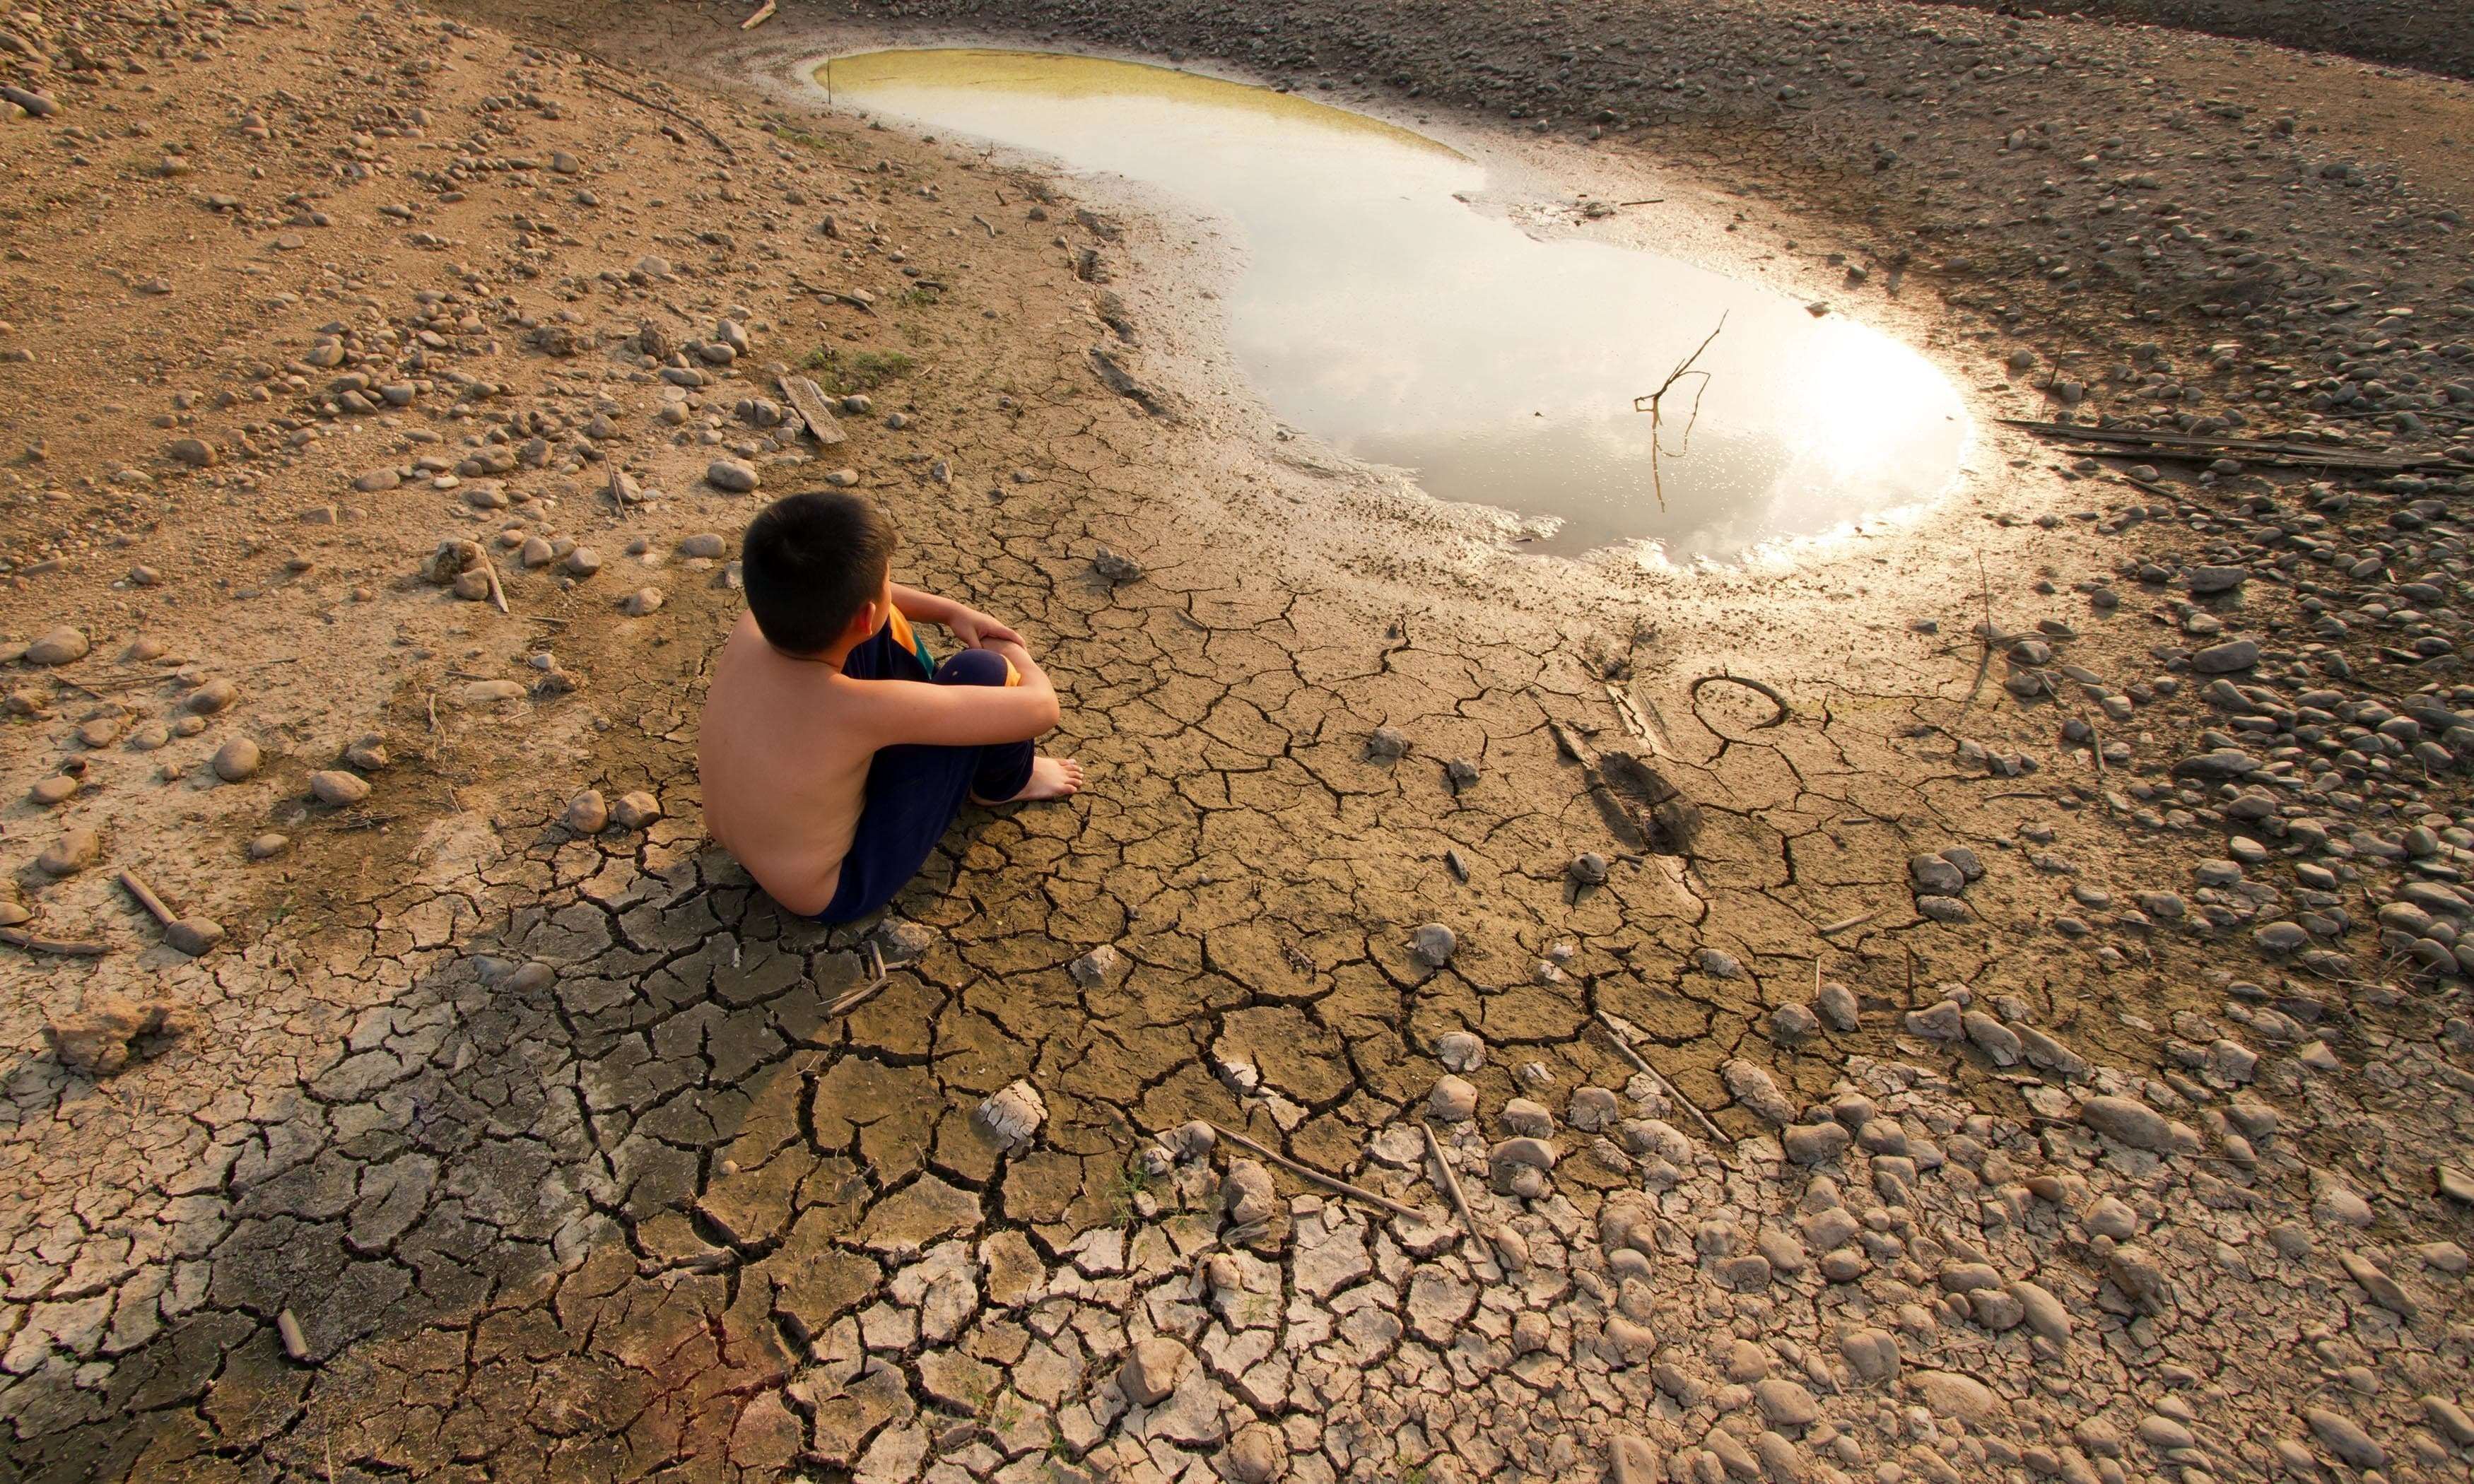 Pakistan's fast-changing weather trend is setting records but not for good reasons — February 2021 was found to be the third driest month over the past 60 years. — Shutterstock/File